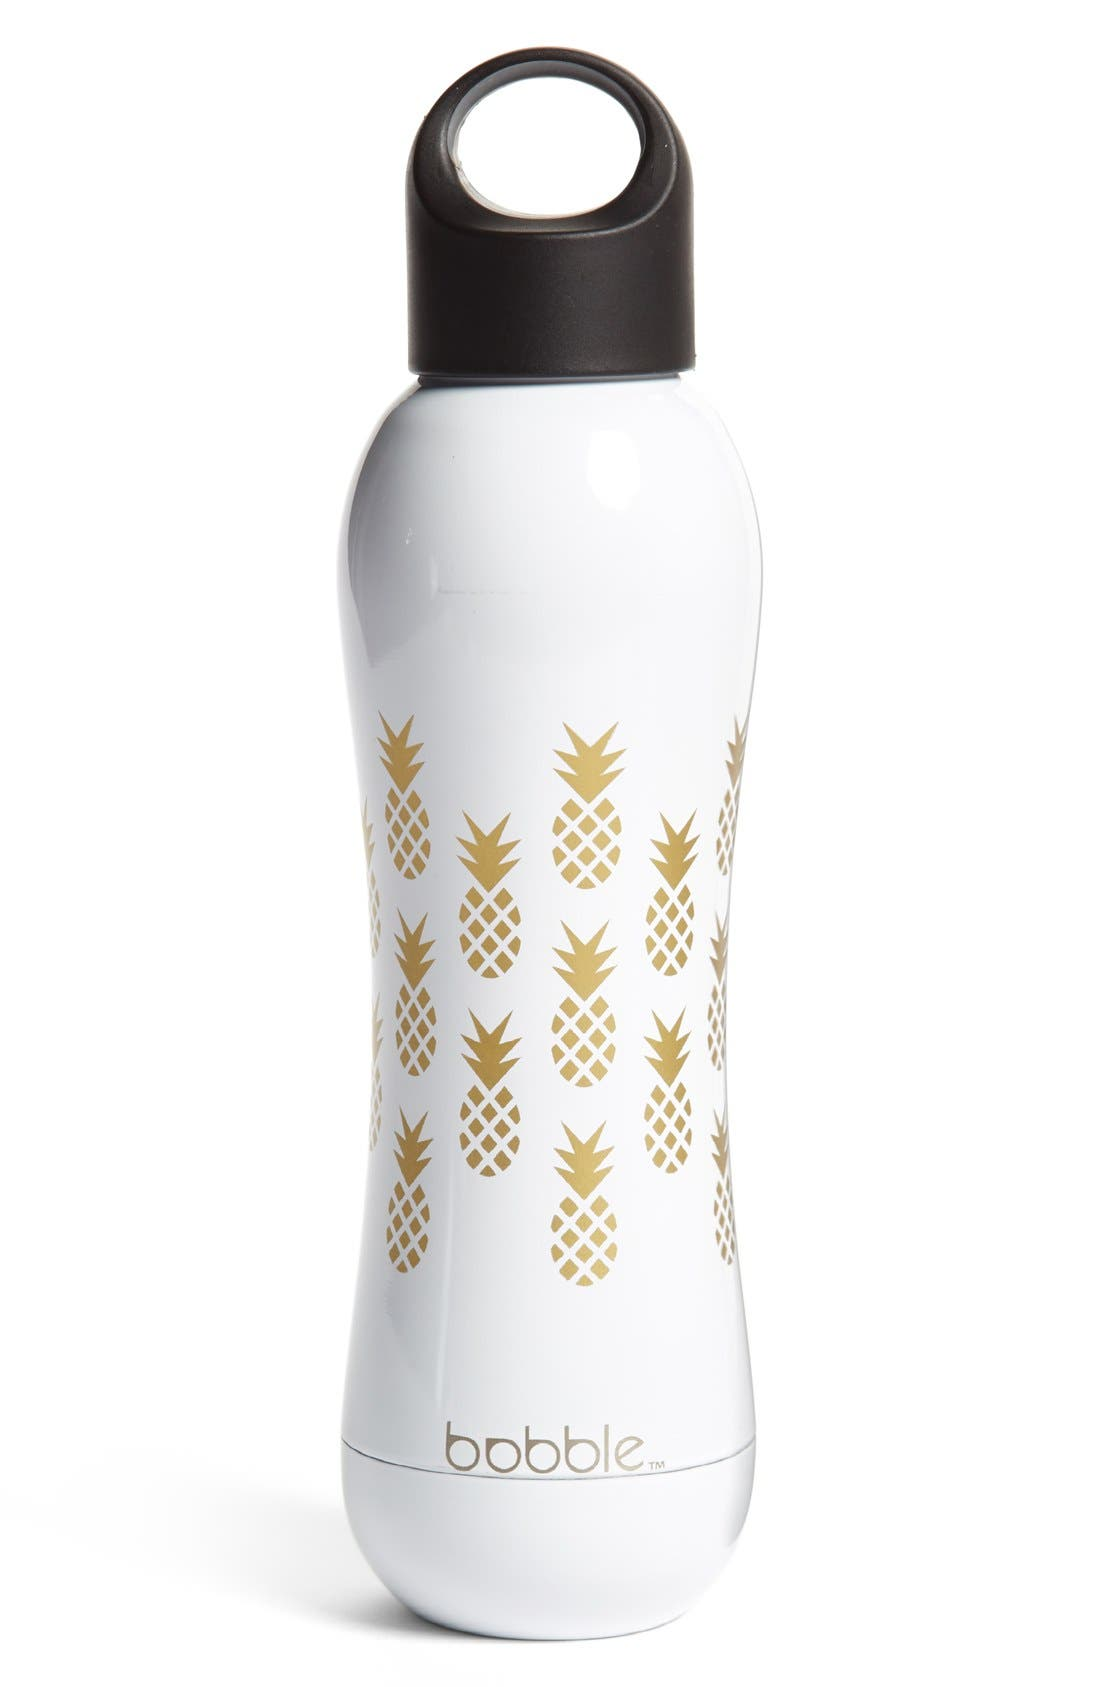 Main Image - bobble 'Pining for You' Stainless Steel Water Bottle